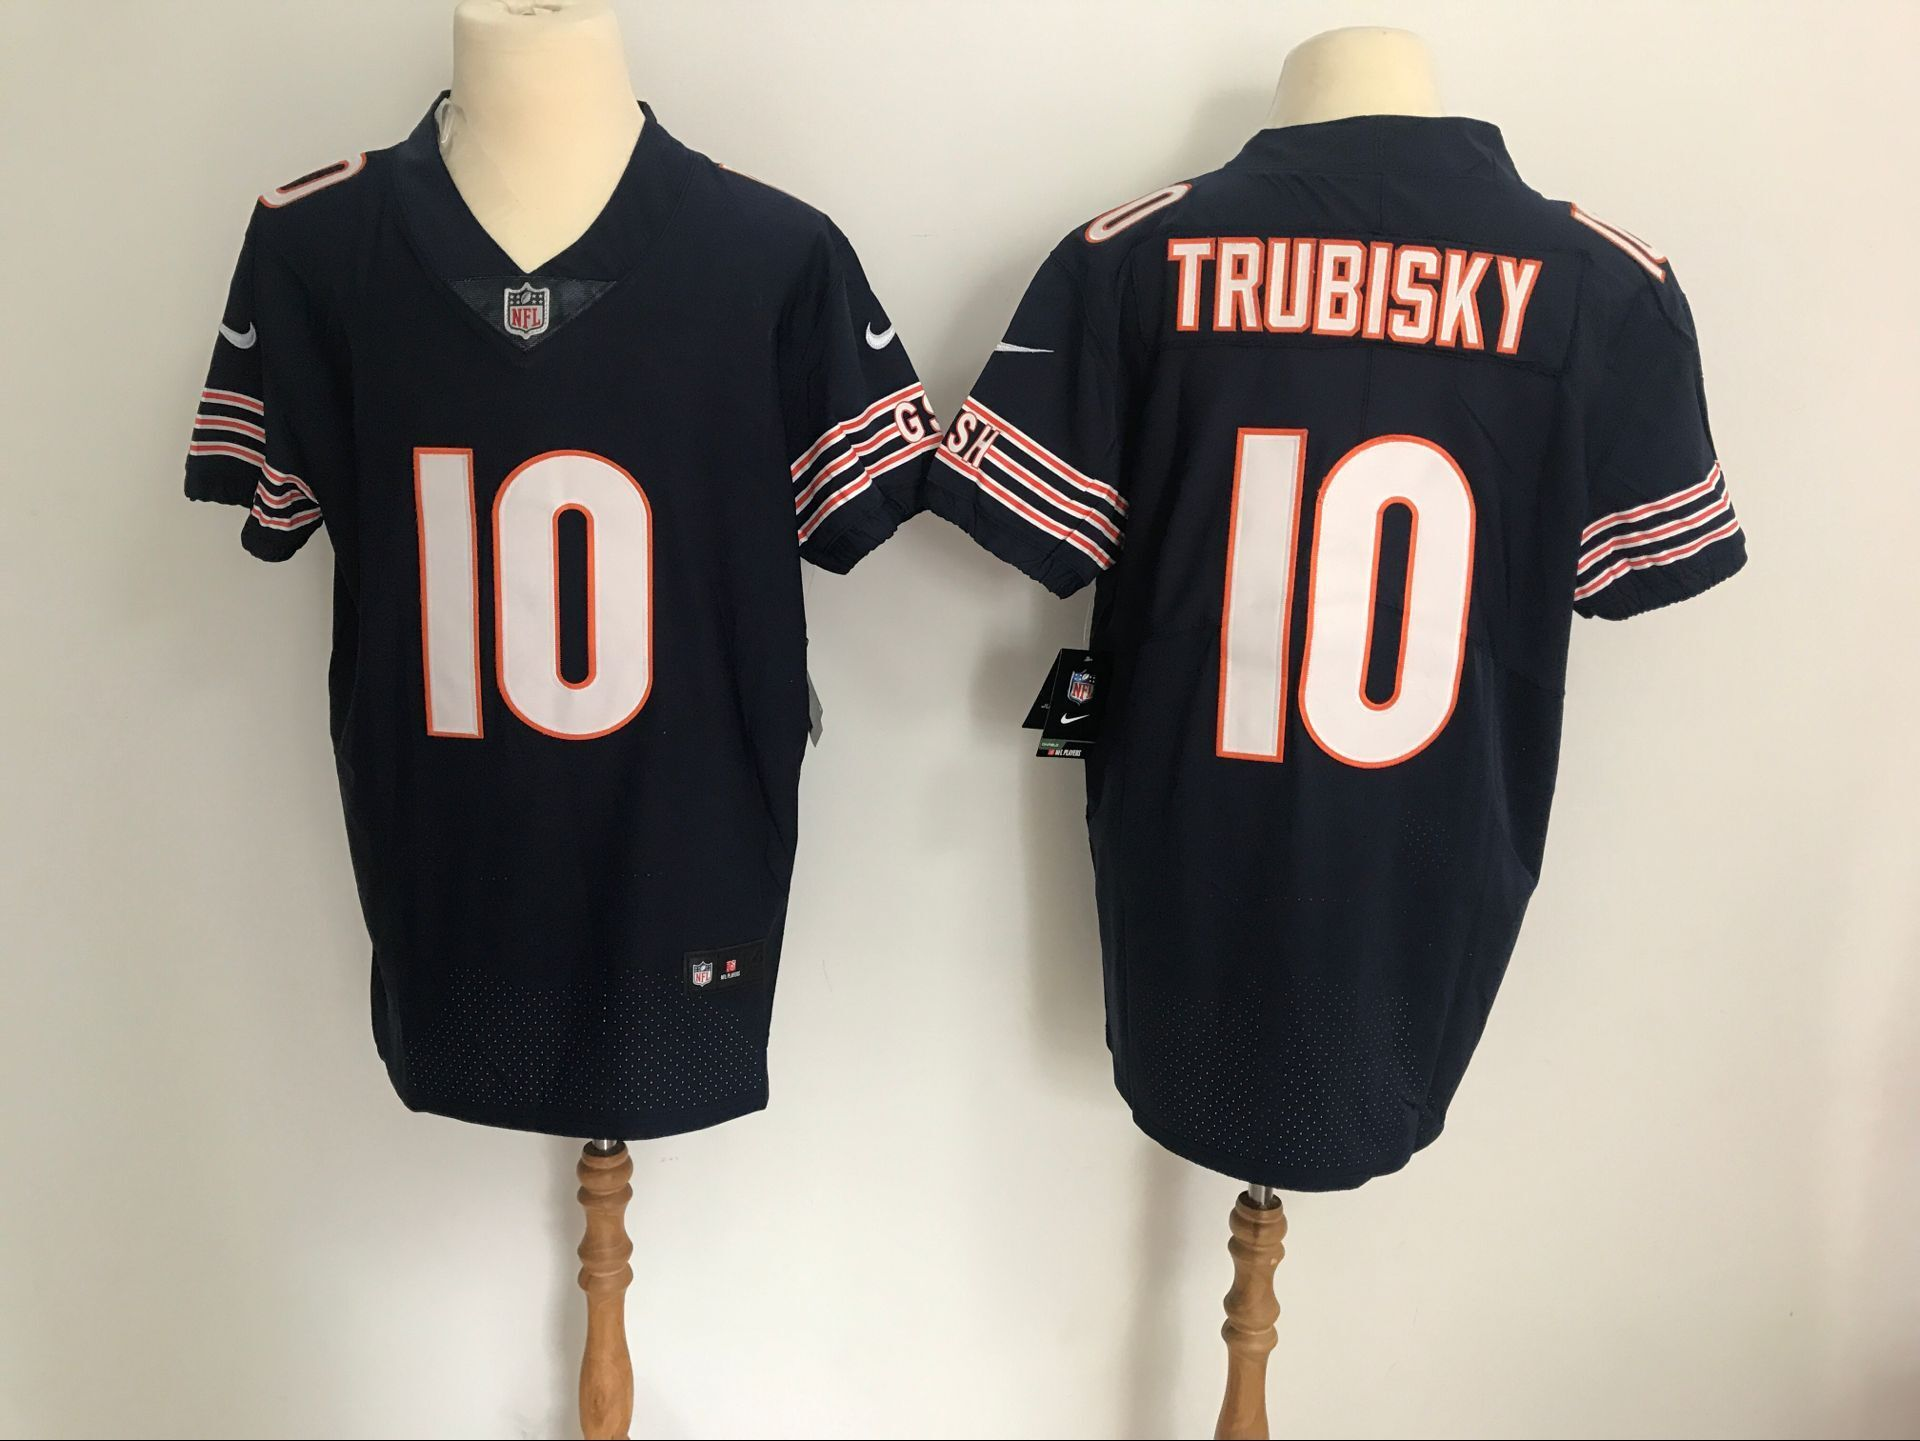 online store c7ad6 3c68f Men\'s Chicago Bears #10 Mitchell Trubisky Black Vapor ...